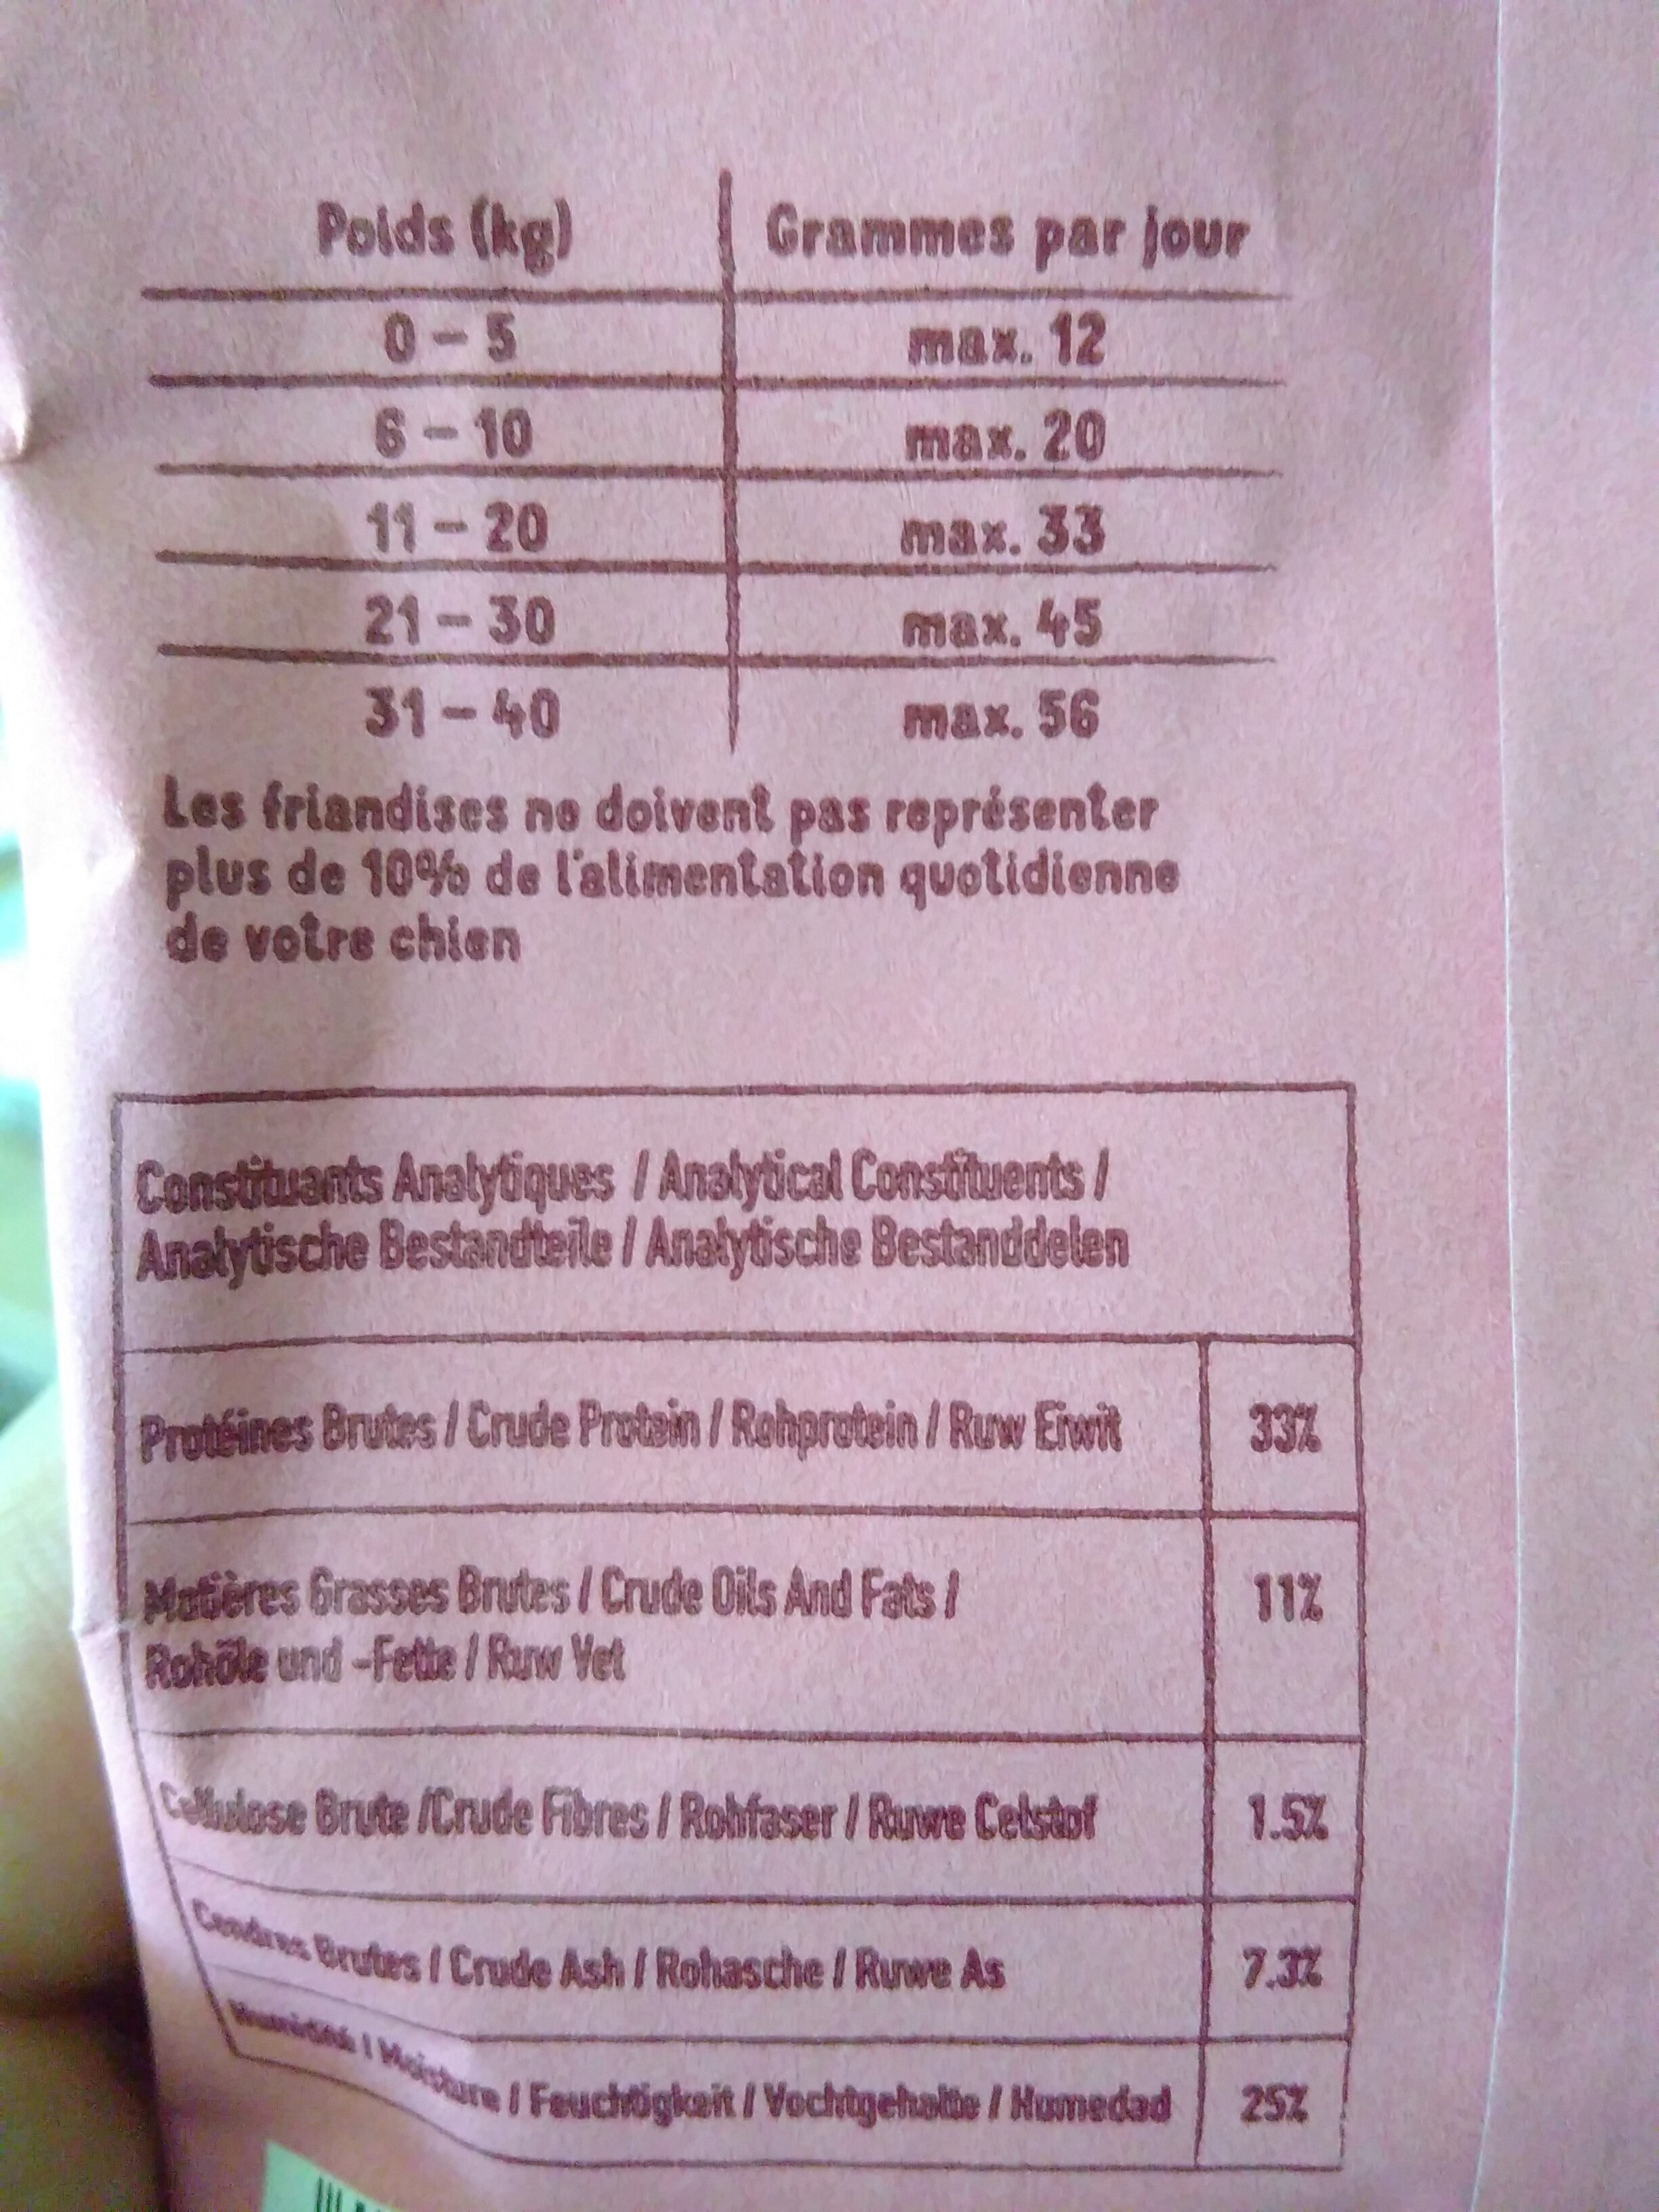 Bonbecs au canard & au poulet - Nutrition facts